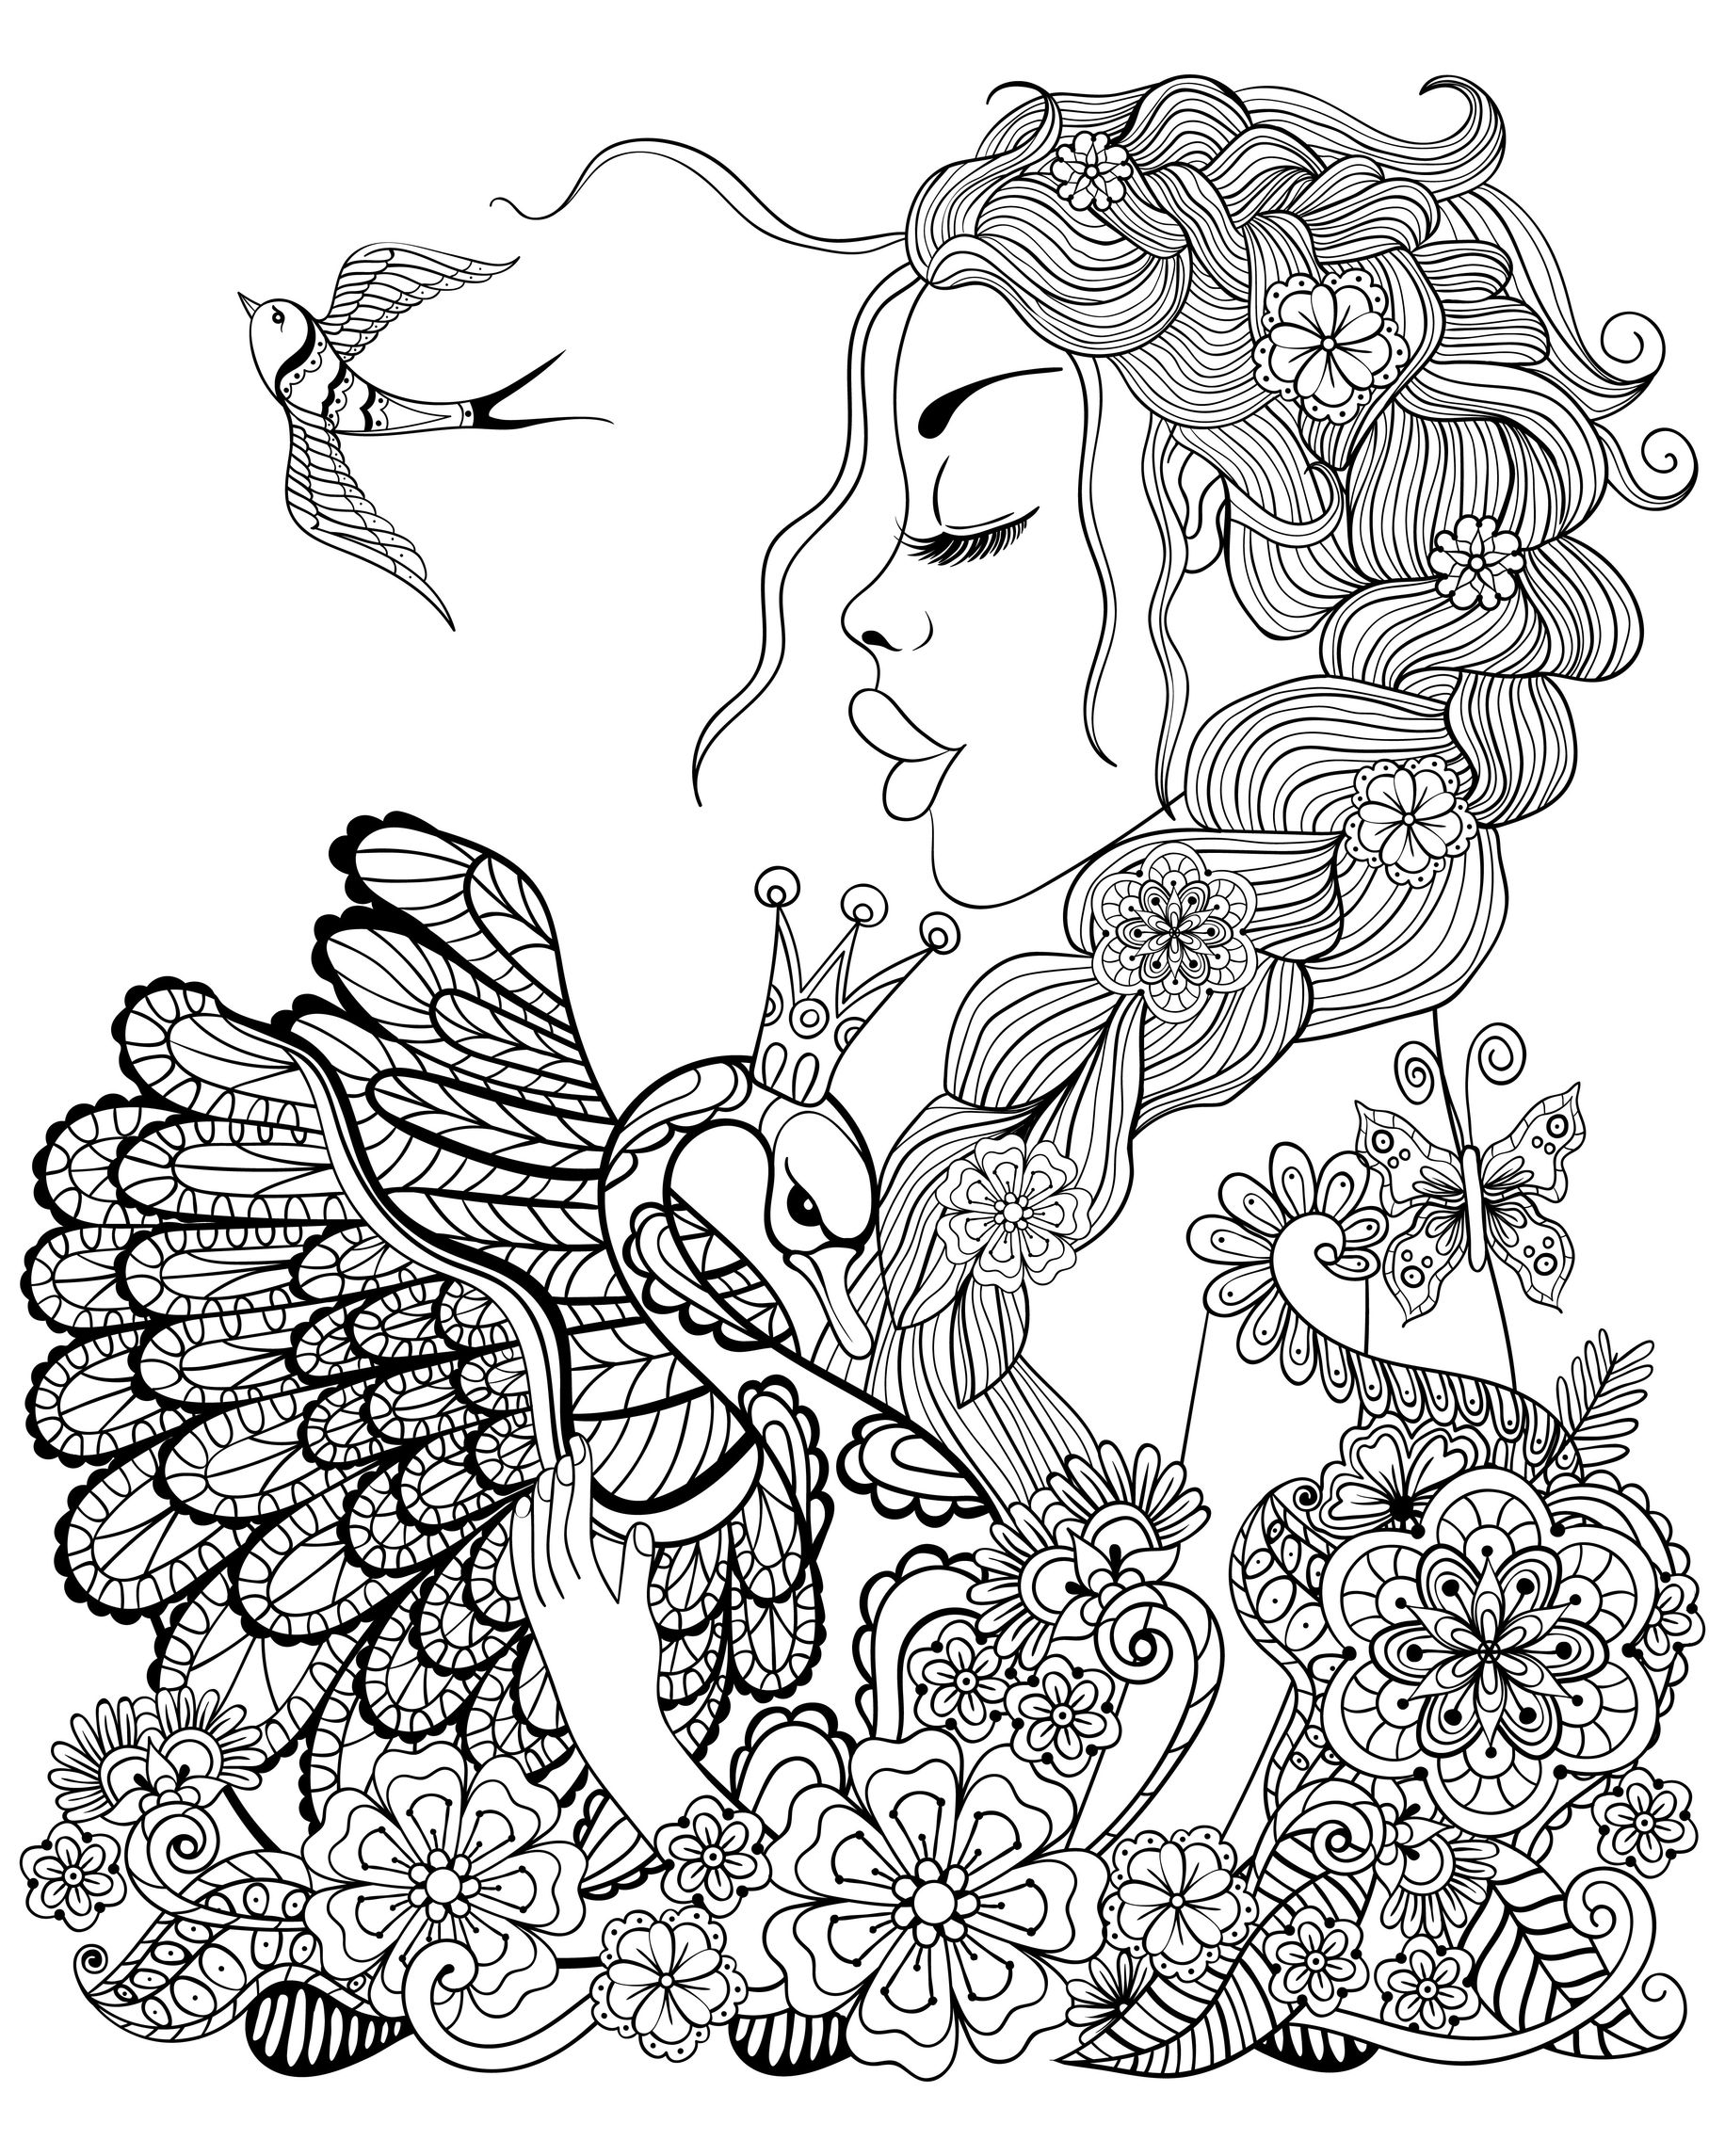 Coloring Pages For Adults: Coloring Pages For Adults